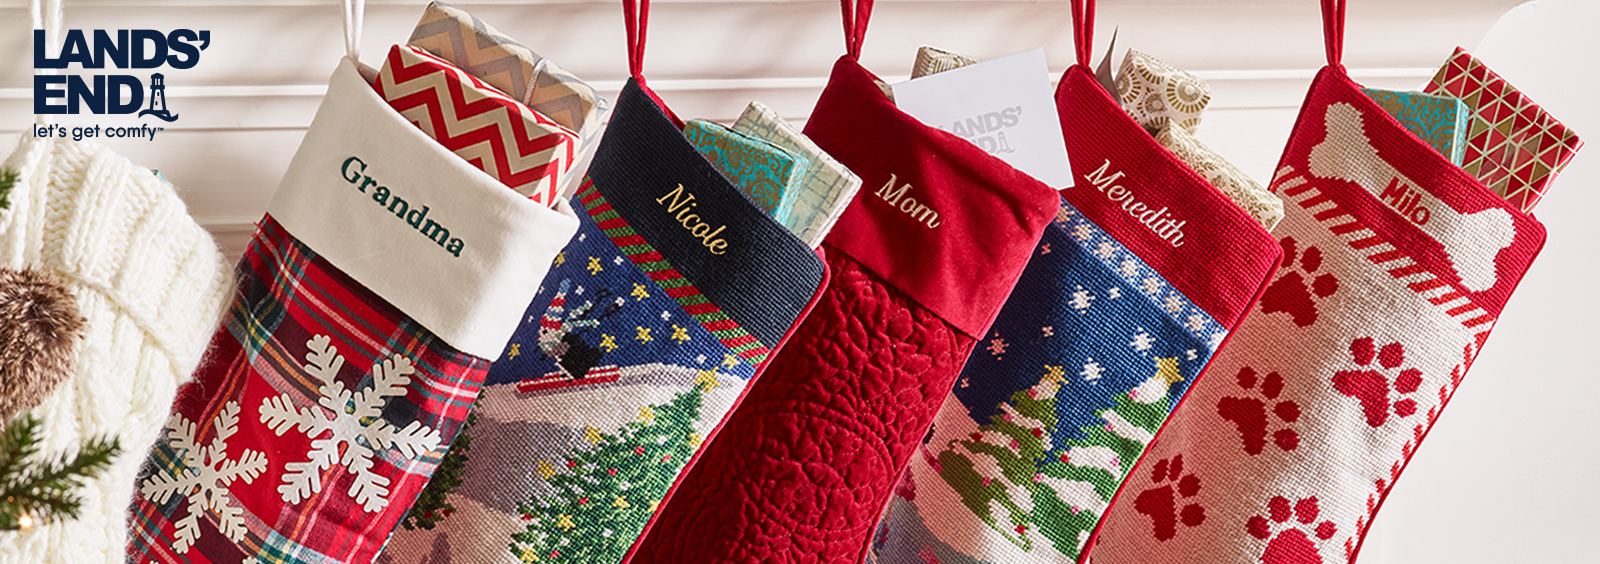 5 Decorative Holiday Accents for the Home